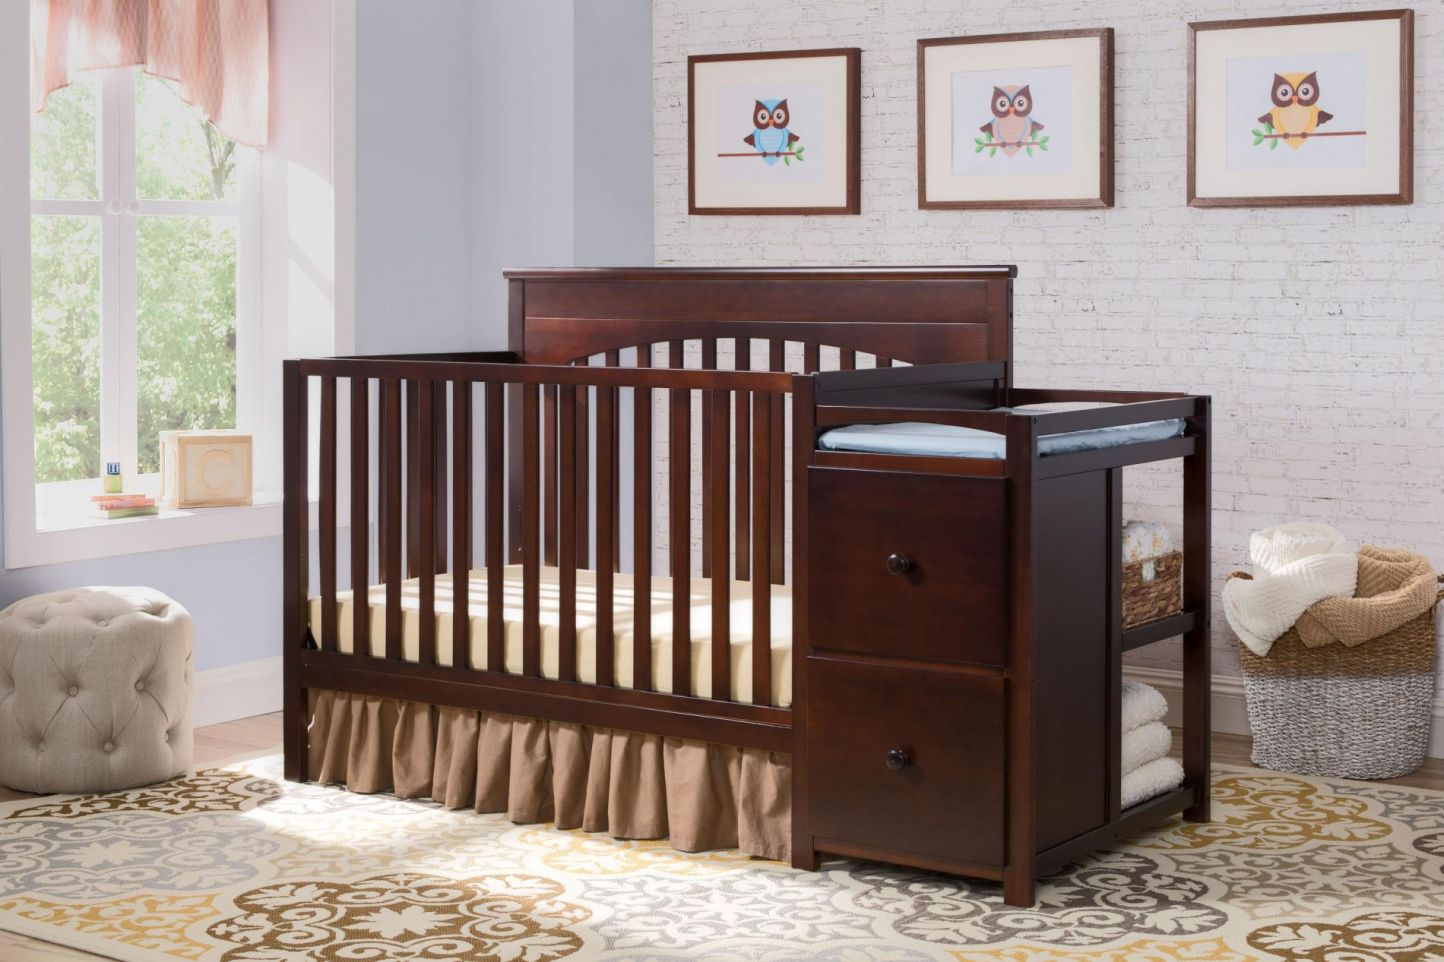 boy nursery design wells cheap baby babie works us mes bedding picture r by crib modern diverting dazzling cupboard walmart cribs target furniture black bumper sets as for at beautiful